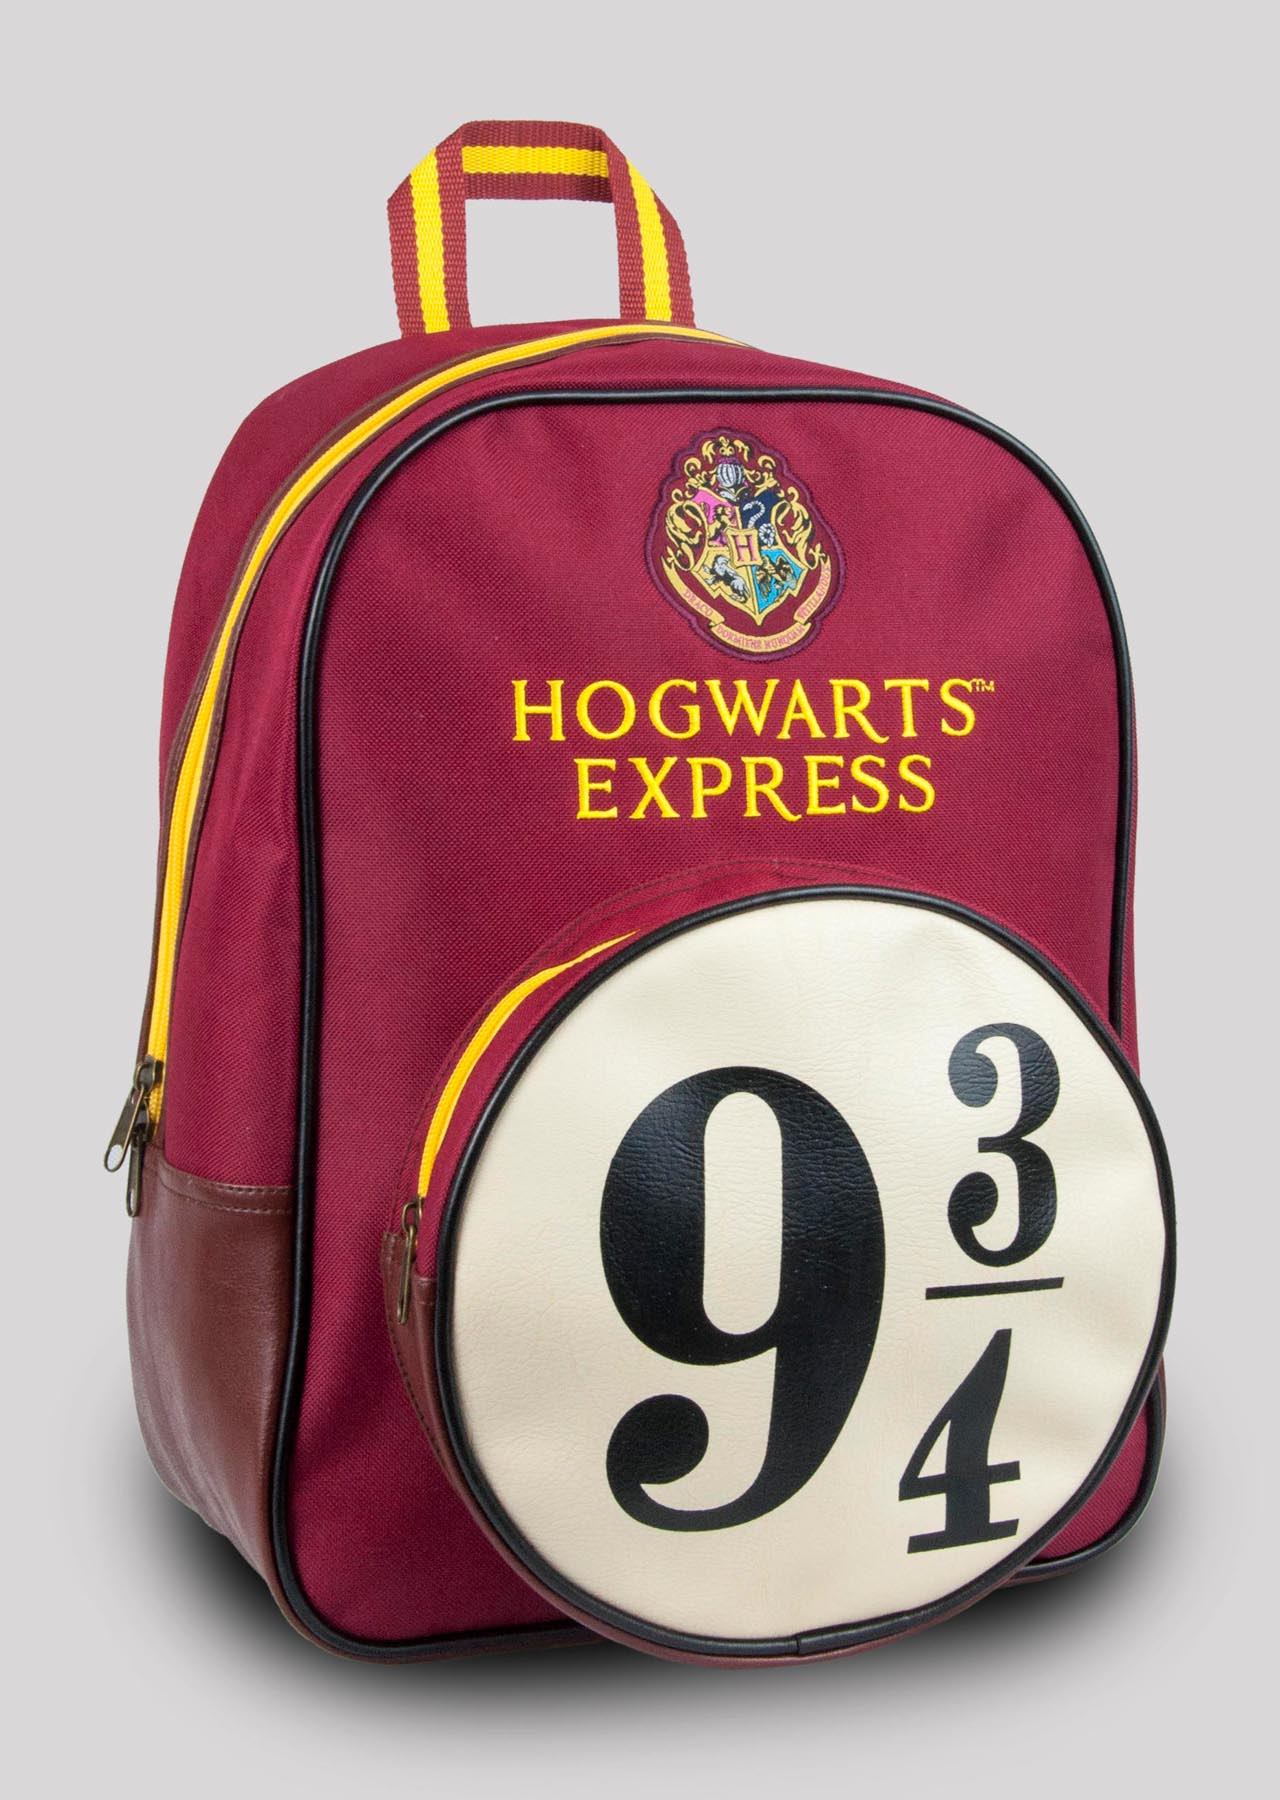 1e2ebe26ea0 Harry Potter Hogwarts Express 9 3 4 Backpack – Groovy UK